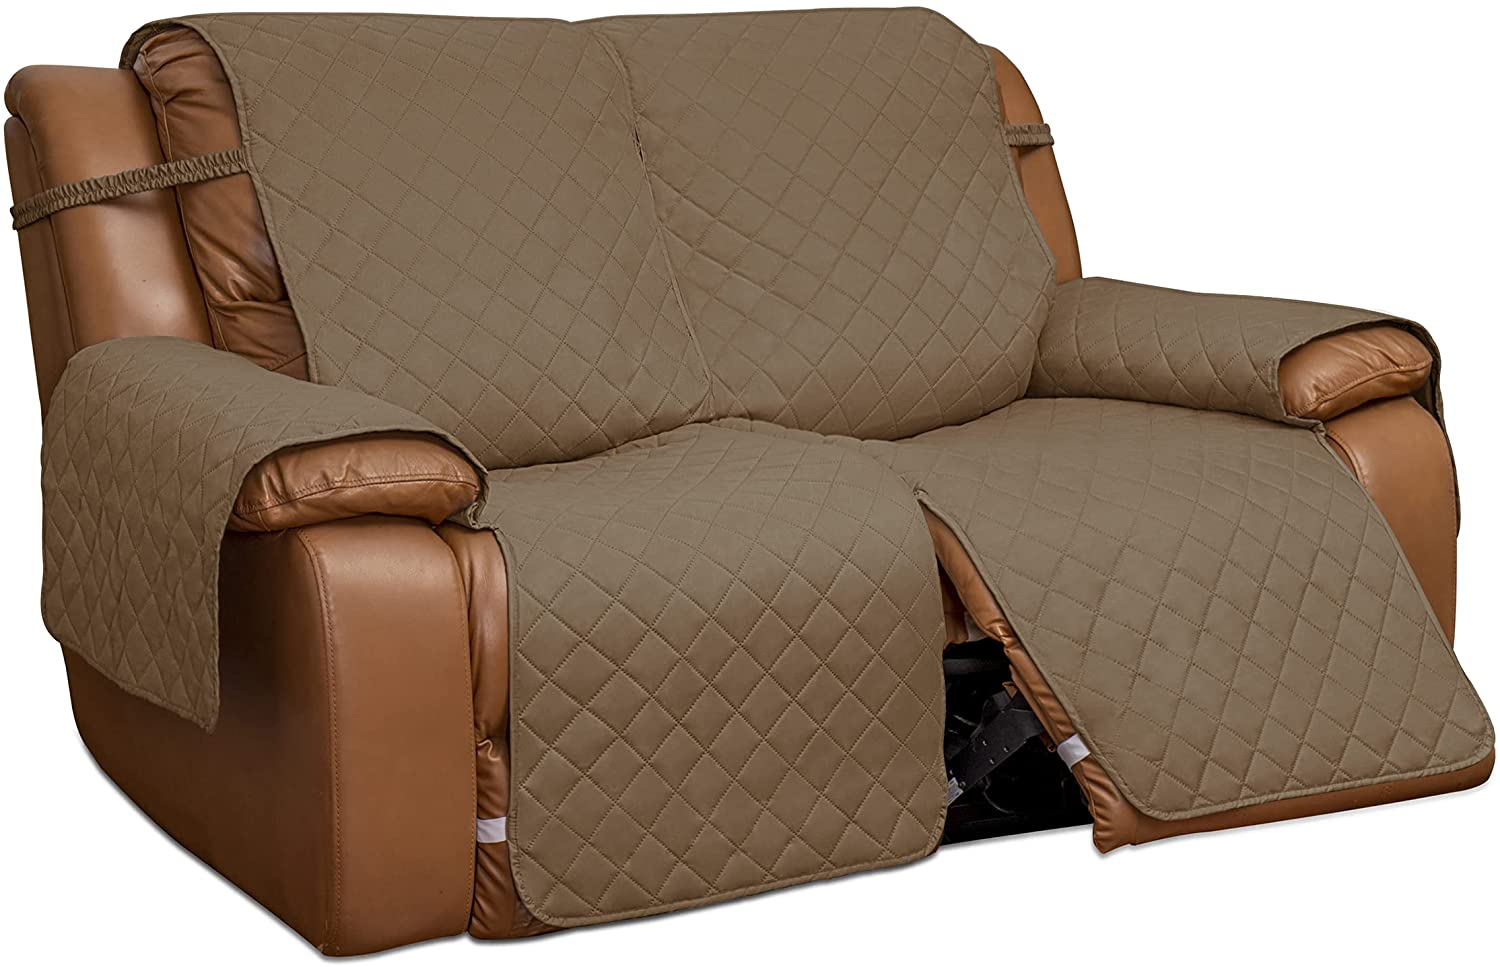 Easy-Going Loveseat Regular discount Recliner Cover Reversible D ! Super beauty product restock quality top! Couch for